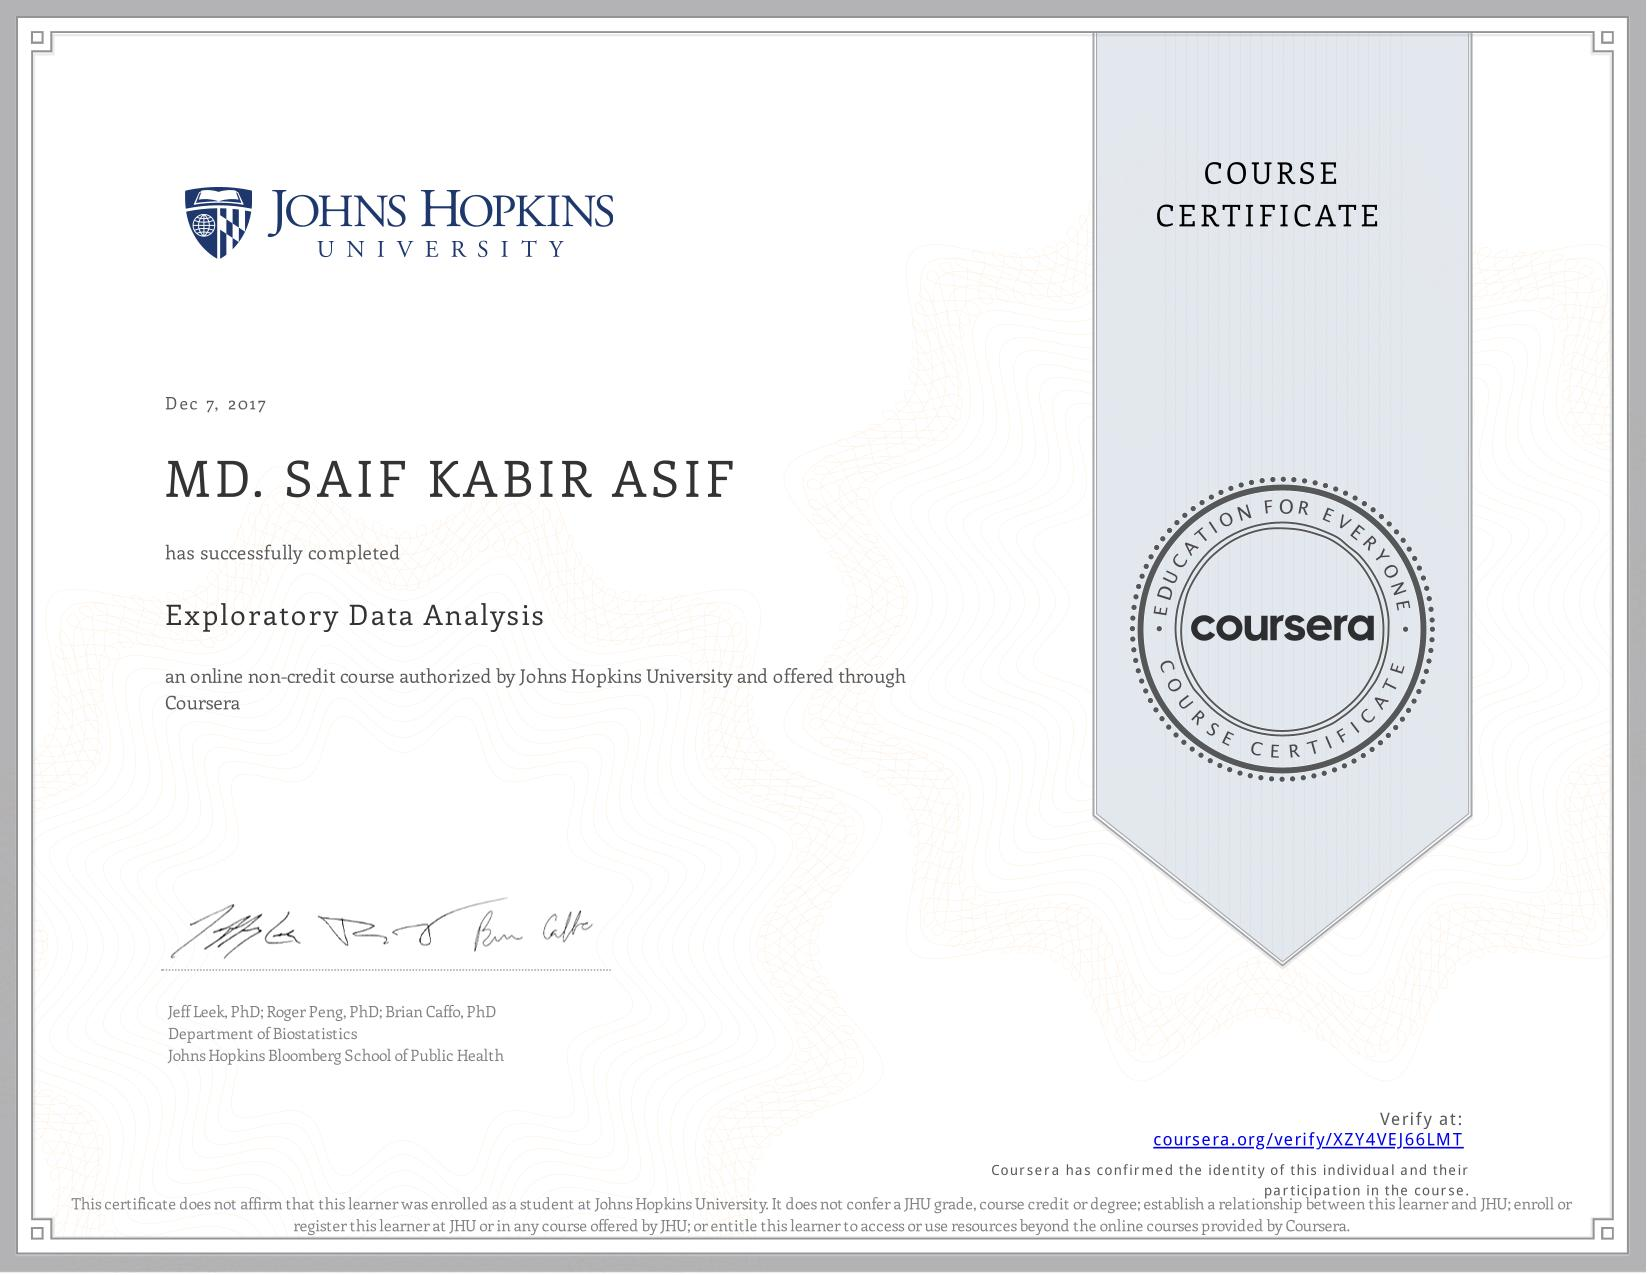 View certificate for Md. Saif Kabir  Asif, Exploratory Data Analysis, an online non-credit course authorized by Johns Hopkins University and offered through Coursera